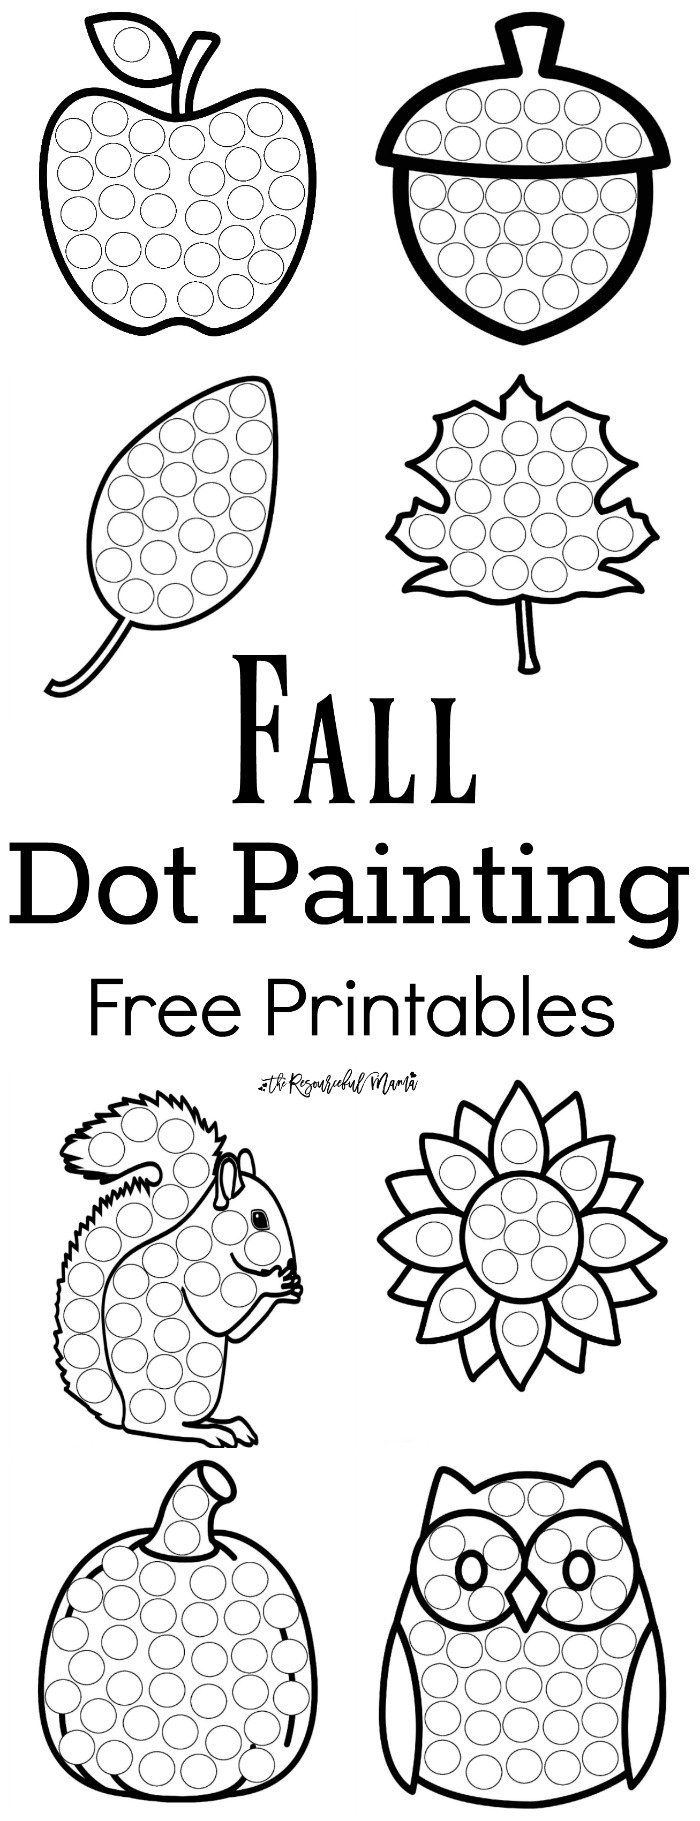 medium resolution of these fall dot painting worksheets are a fun mess free painting activity for young kids that work on hand eye coordination and fine motor skills